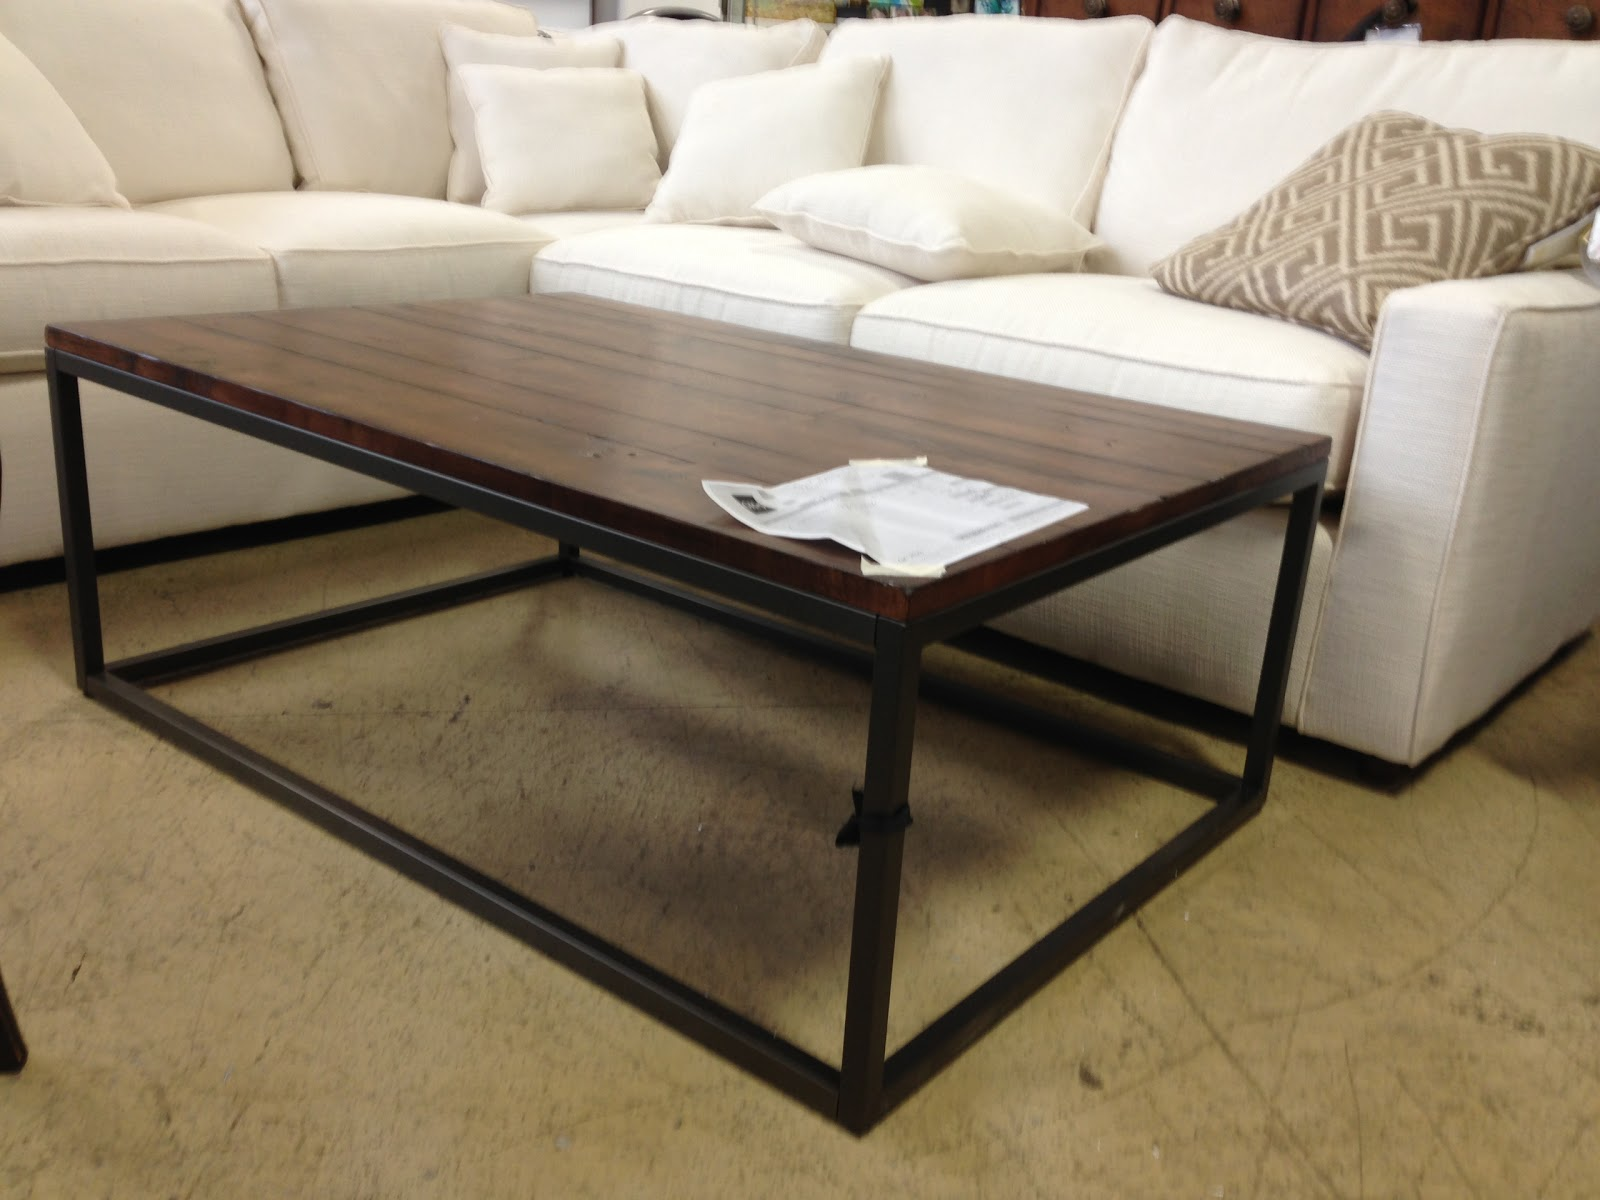 Interior Groupie: Living room - chair and coffee table